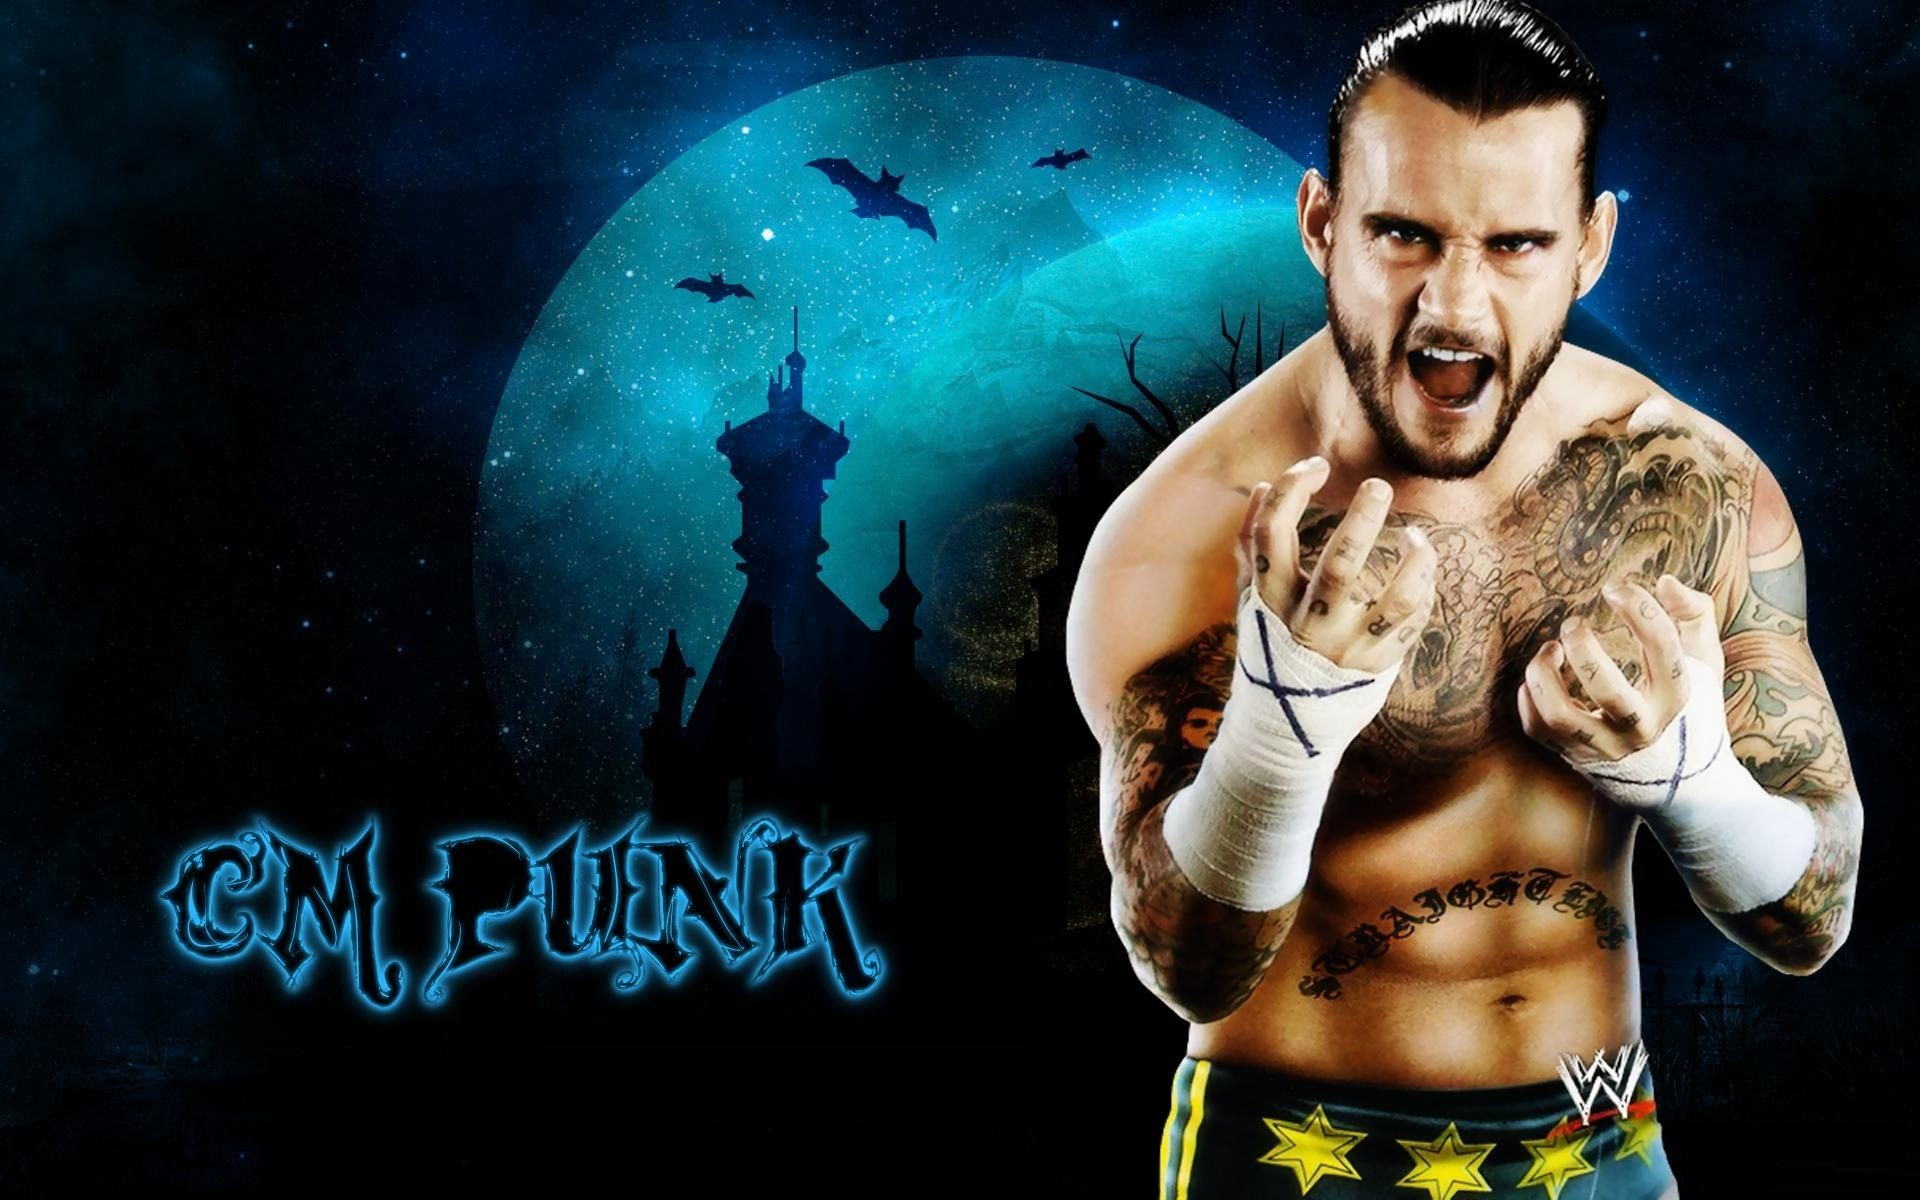 1920x1200 WWE Cm Punk Wallpapers 2015 - Wallpaper Cave